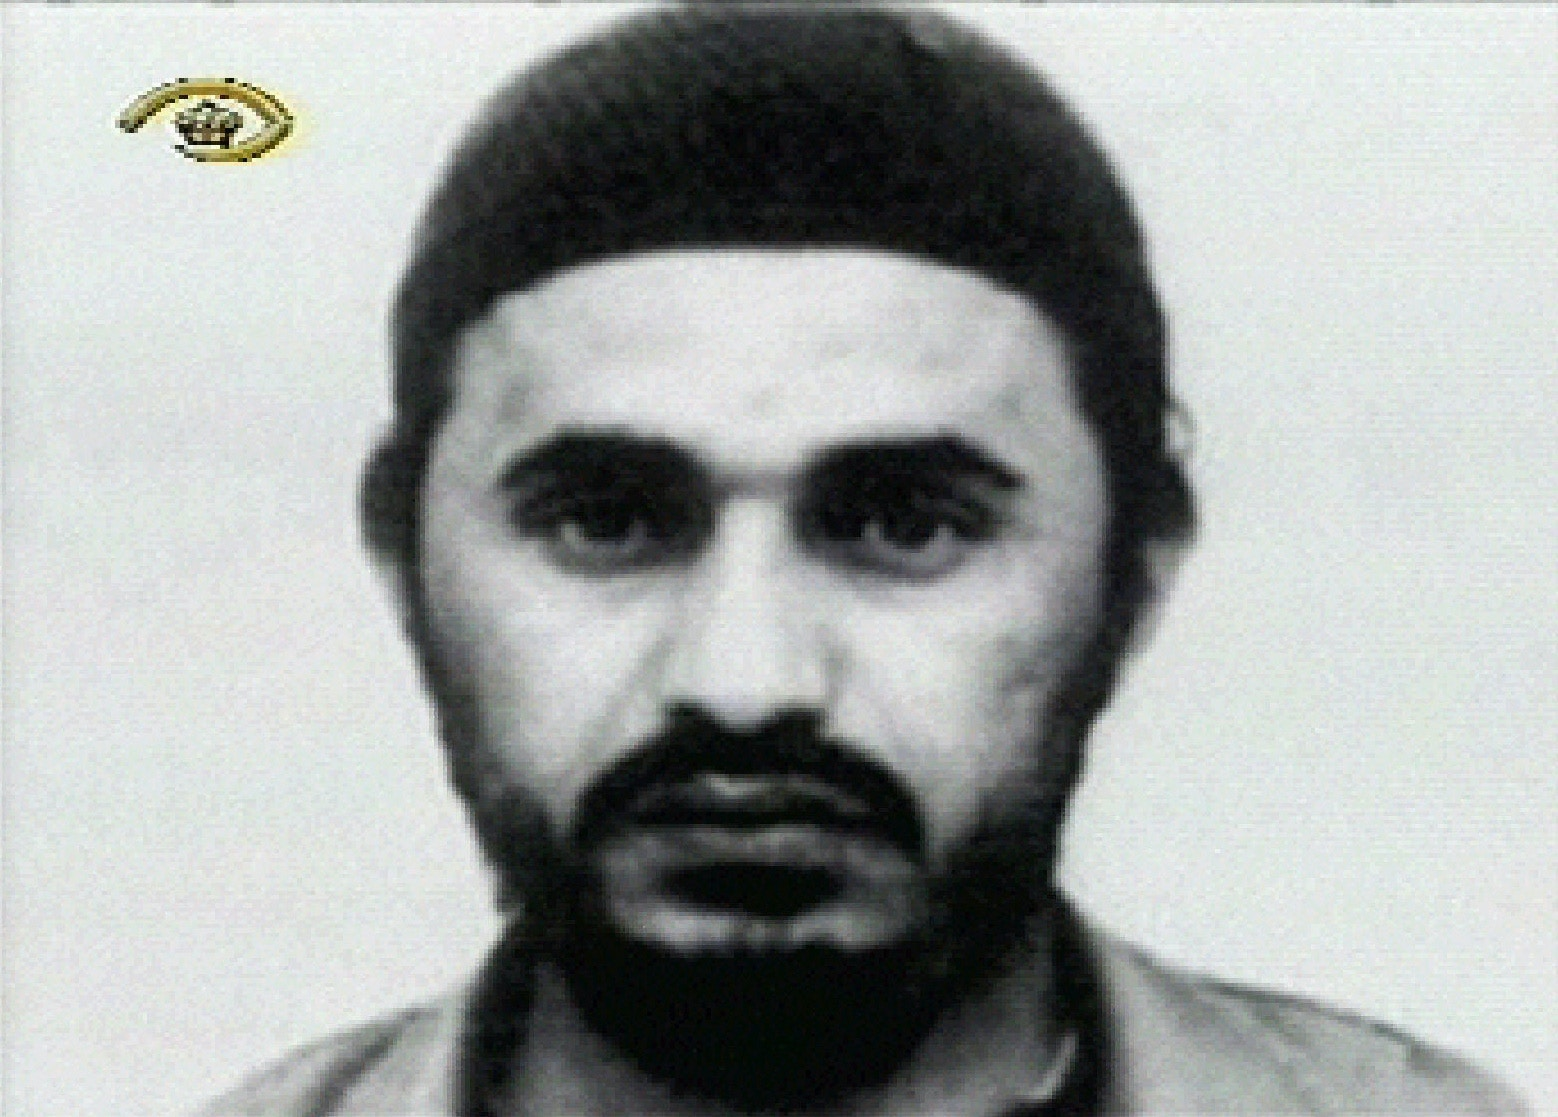 Amman, JORDAN:  (FILES) -- This image grab from Jordan's official TV dated 26 April 2004 shows Jordanian al-Qaeda leader in Iraq Abu Mussab al-Zarqawi. Iraqi television announced 08 June 2006 that the Jordanian-born Zarqawi had been killed in Iraq. AFP PHOTO/Jordanian TV  (Photo credit should read -/AFP/Getty Images)